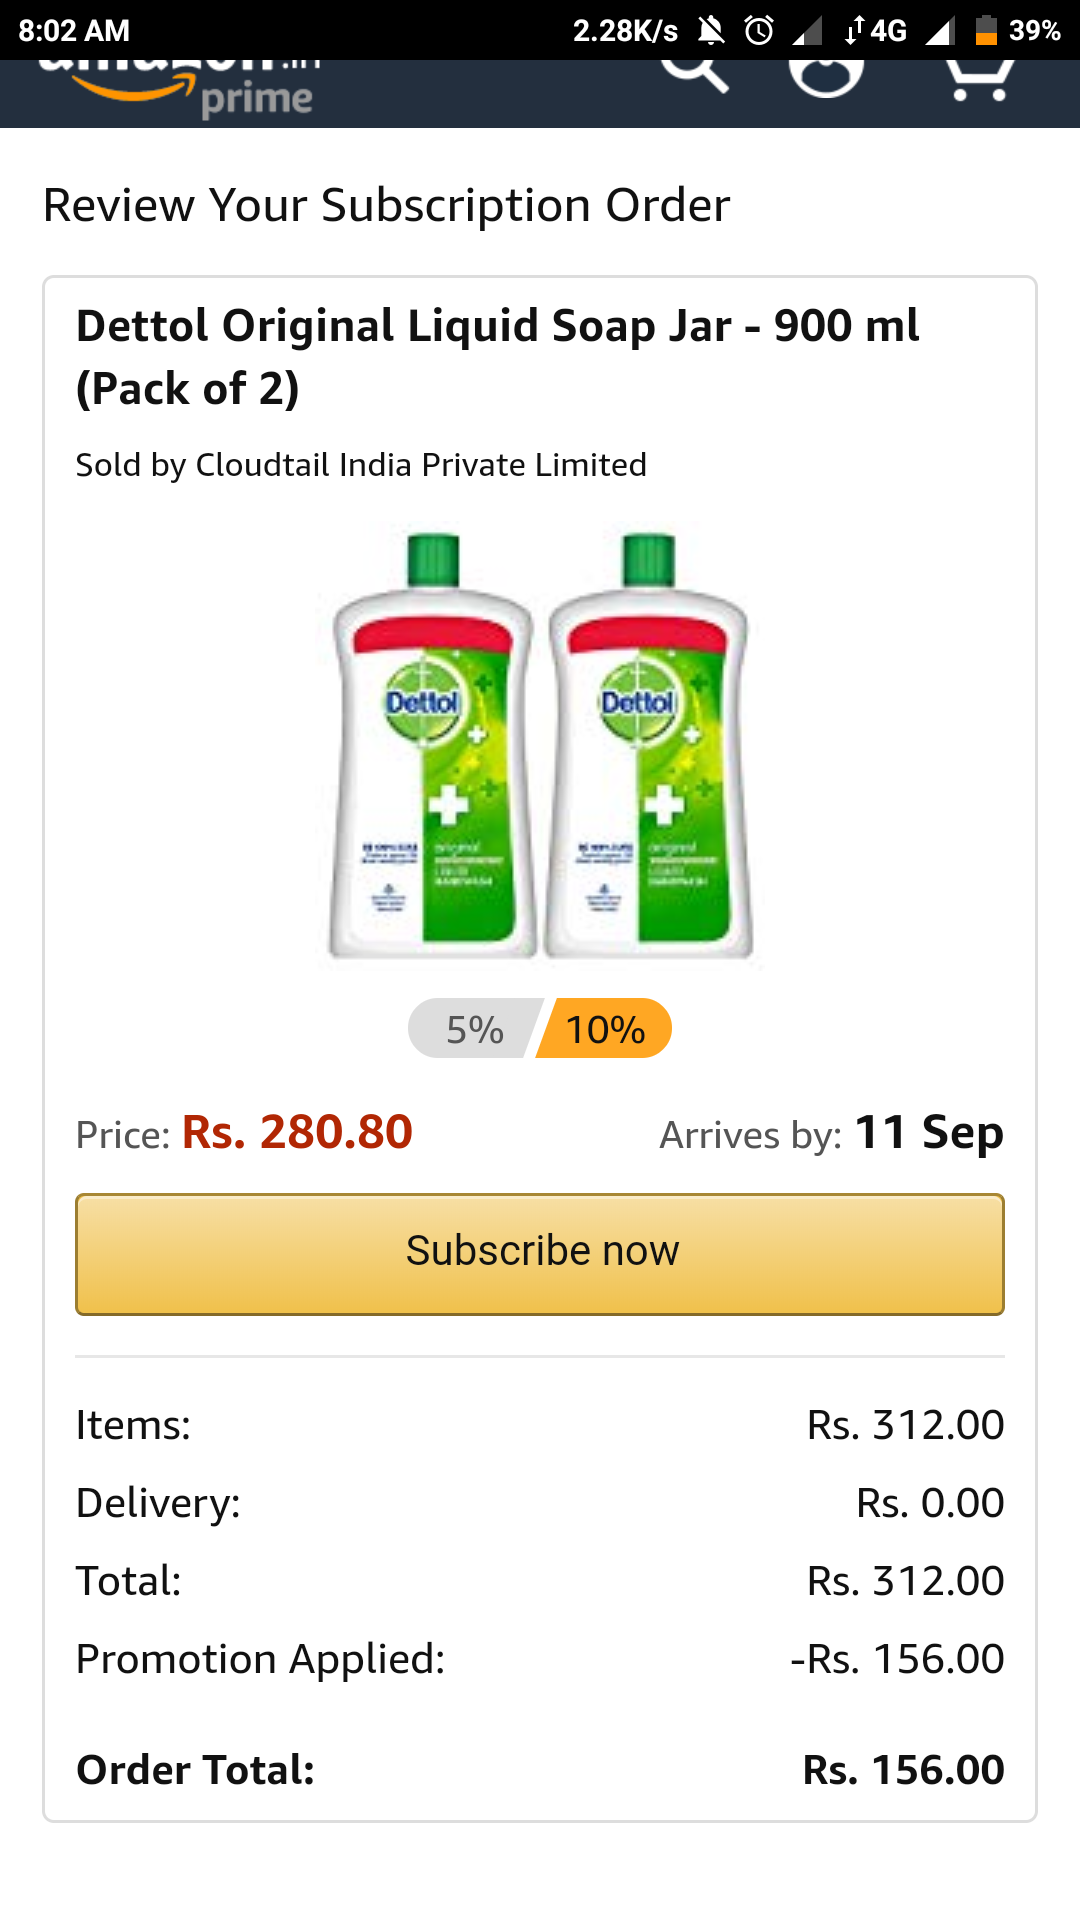 Loot Dettol Liquid Soap Jar 900 Ml Pack Of 2 156 Desidime Original Series Package Https Cdn0 Attachments Photos 526634